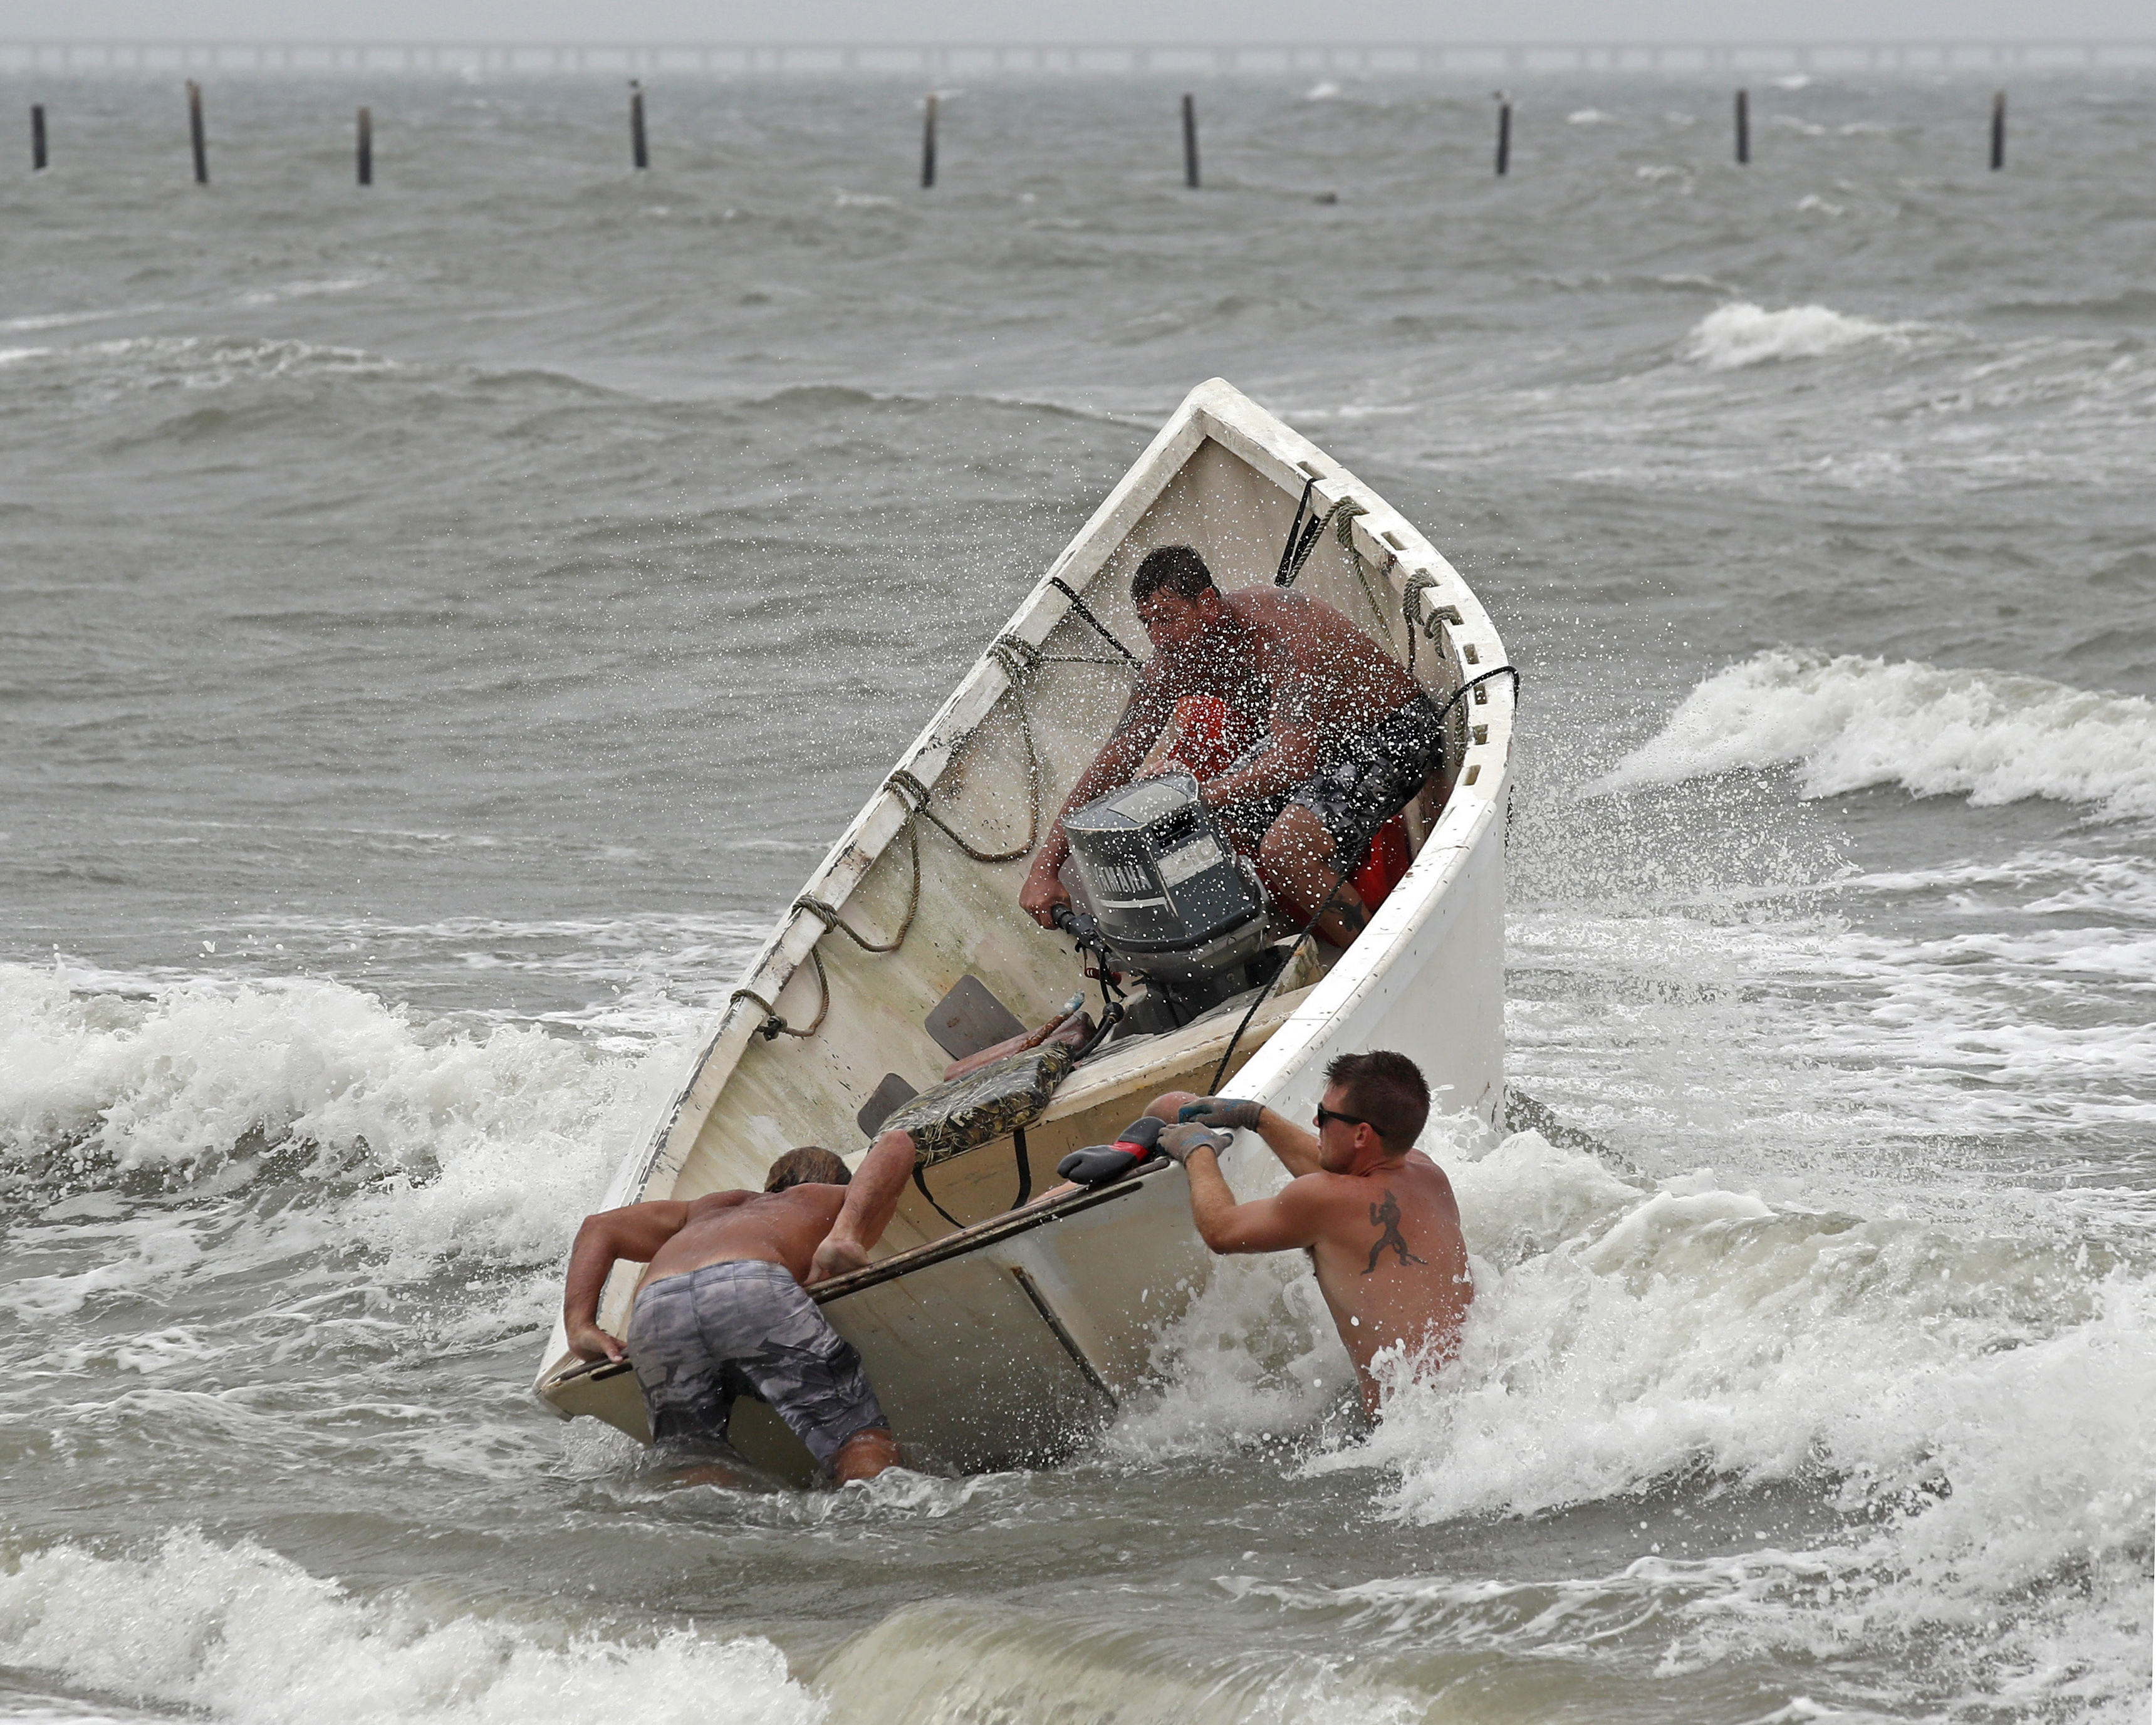 "<div class=""meta image-caption""><div class=""origin-logo origin-image ap""><span>AP</span></div><span class=""caption-text"">Fishermen launch a boat as they attempt to recover their haul-seine fishing net in Virginia Beach, Va., as Hurricane Florence moves towards the eastern shore. (AP Photo/Alex Brandon)</span></div>"